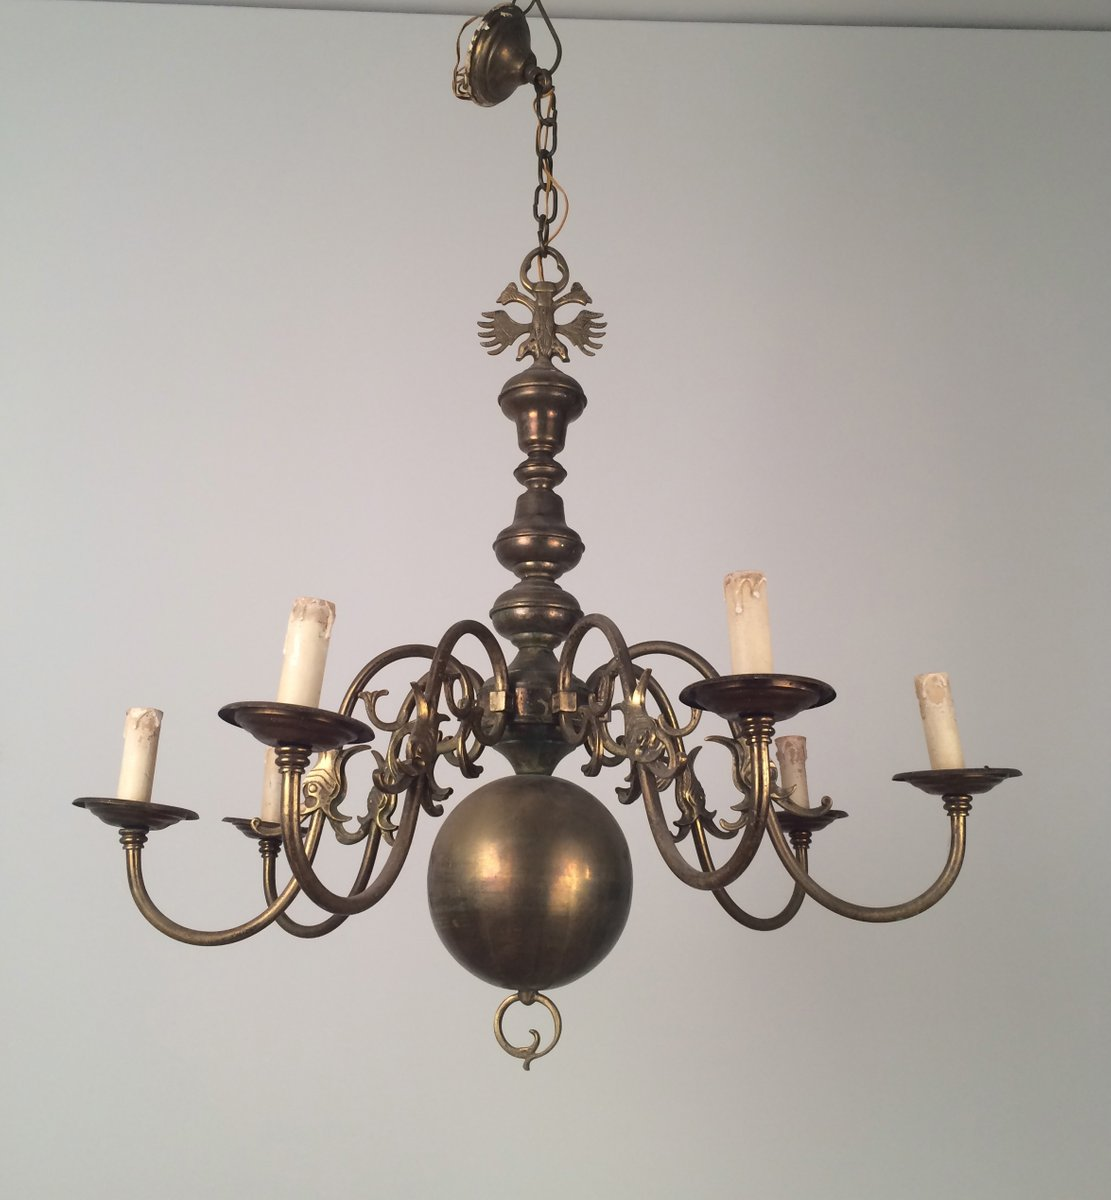 vintage chandelier for sale vintage bronze and brass chandelier 1940s for at pamono 6785